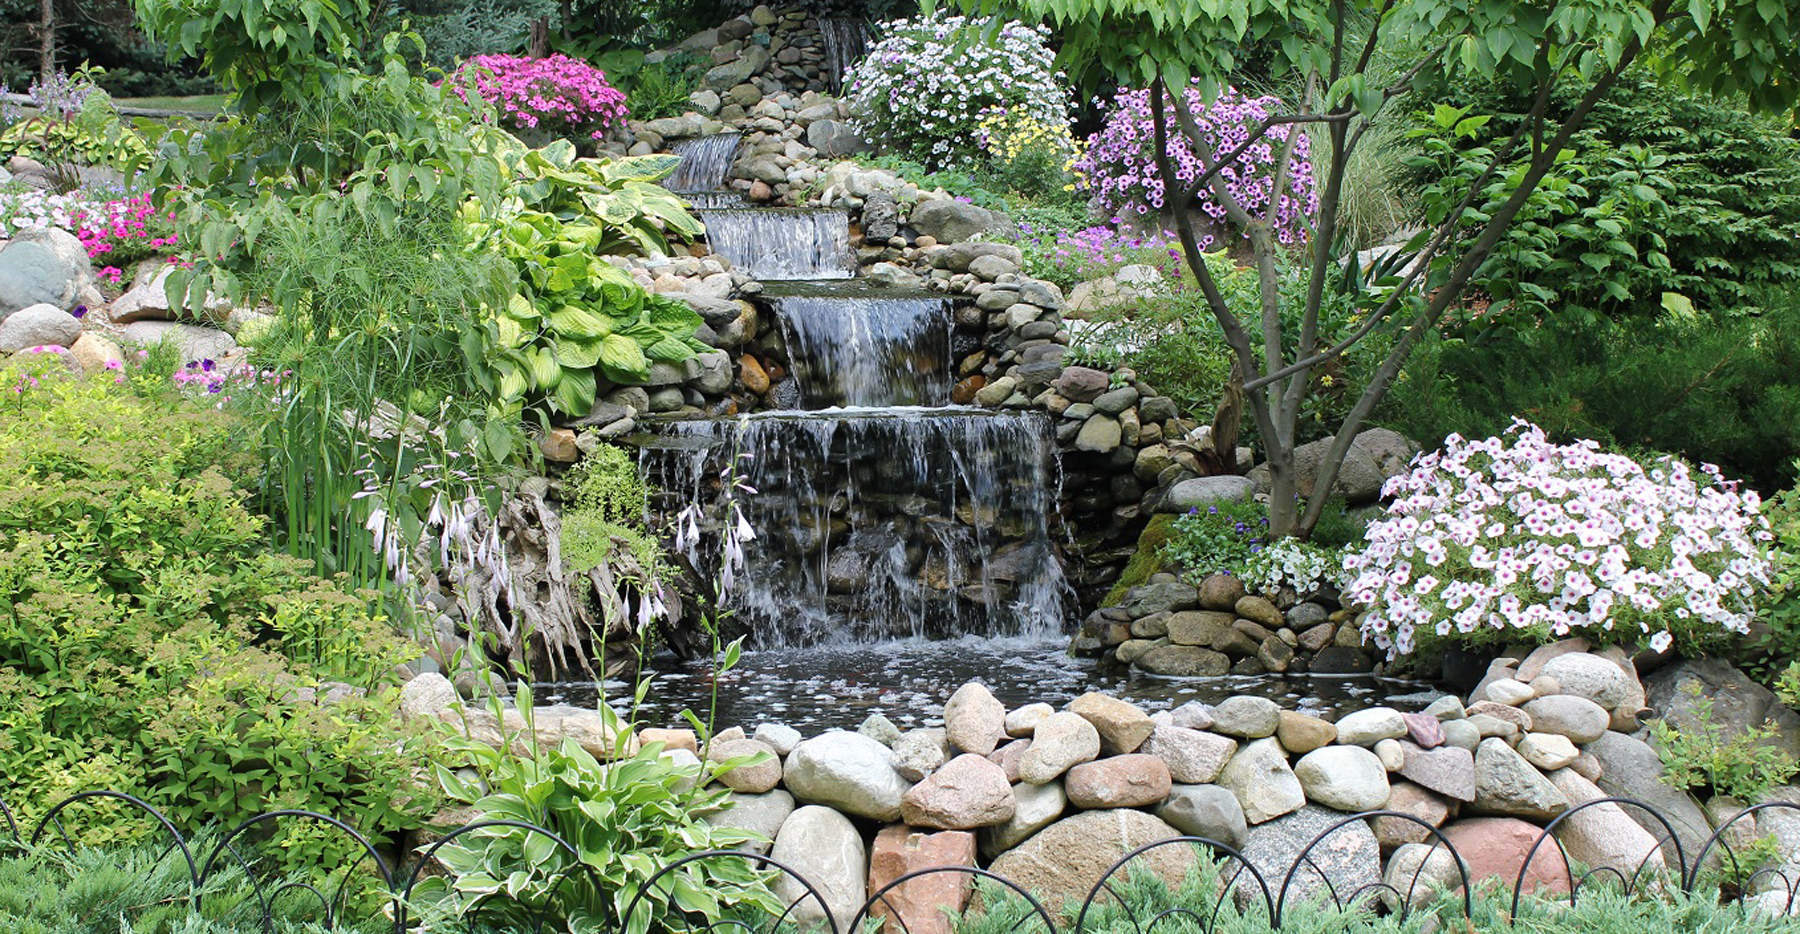 50 ft cascading waterfall, Riverside Receptions Outdoor Weddings